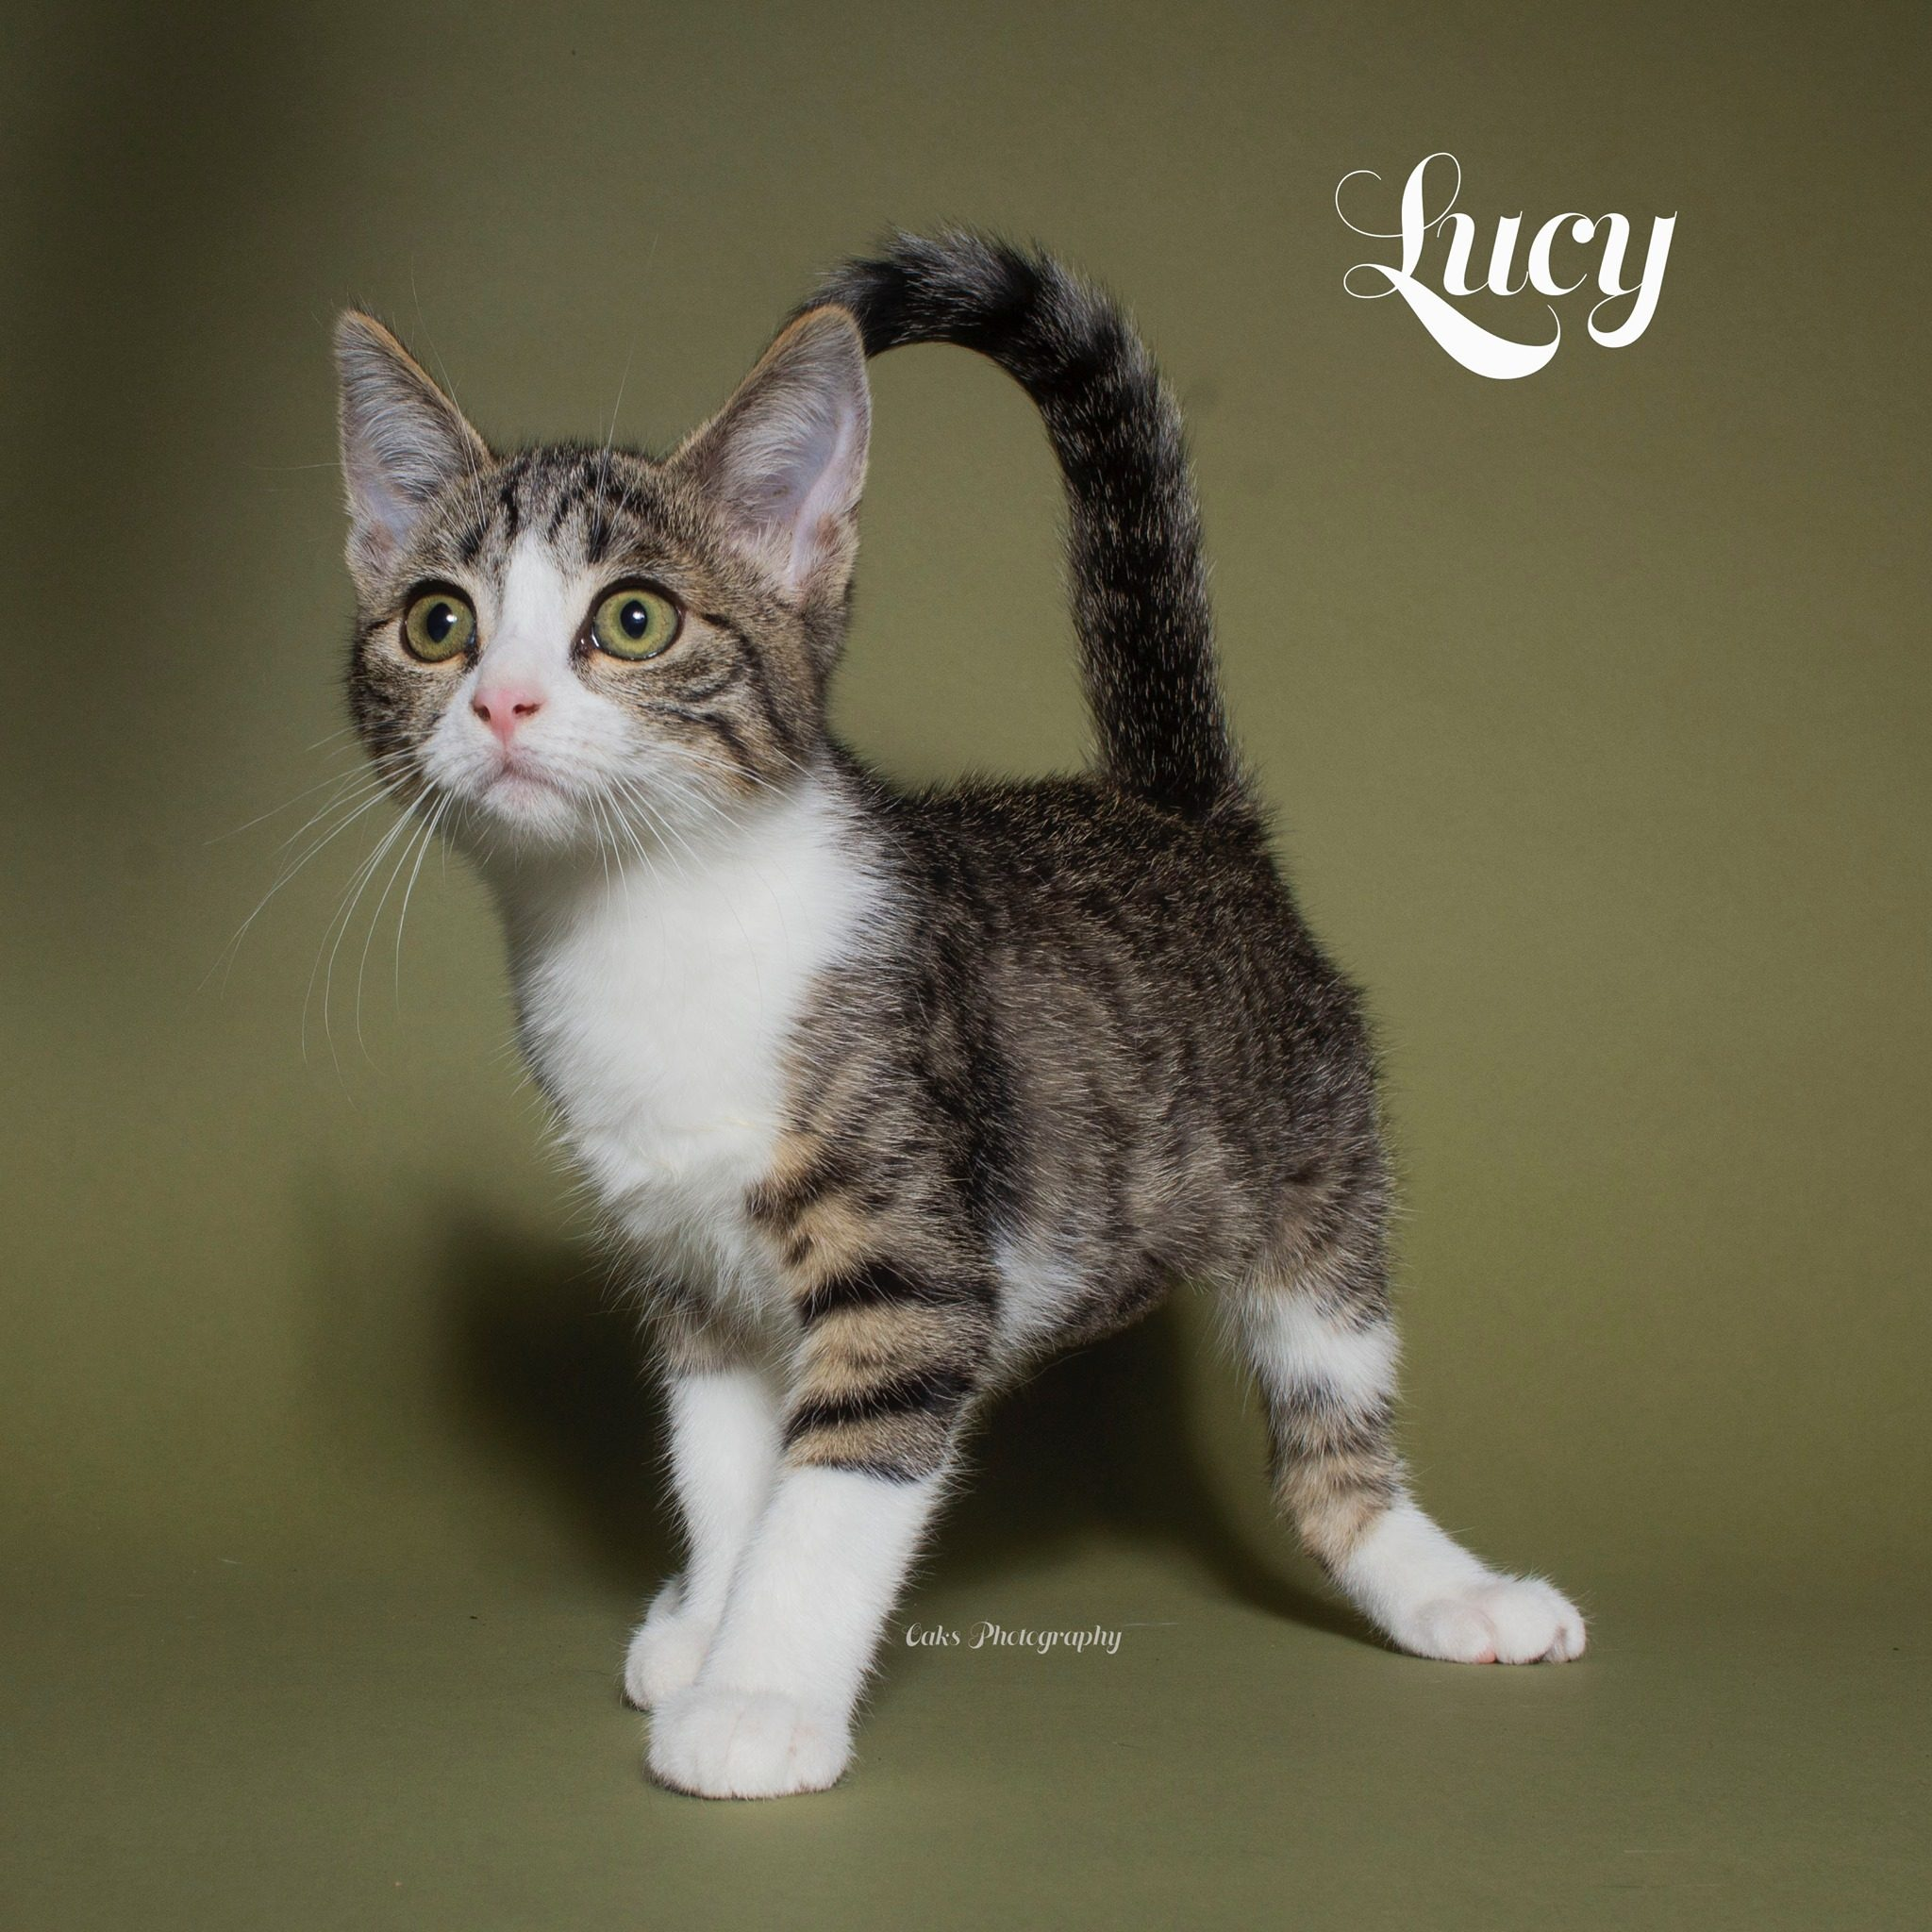 Adopt Lucy who loves to meow and cuddle with Foster Army Animal Rescue in Riverside, CA